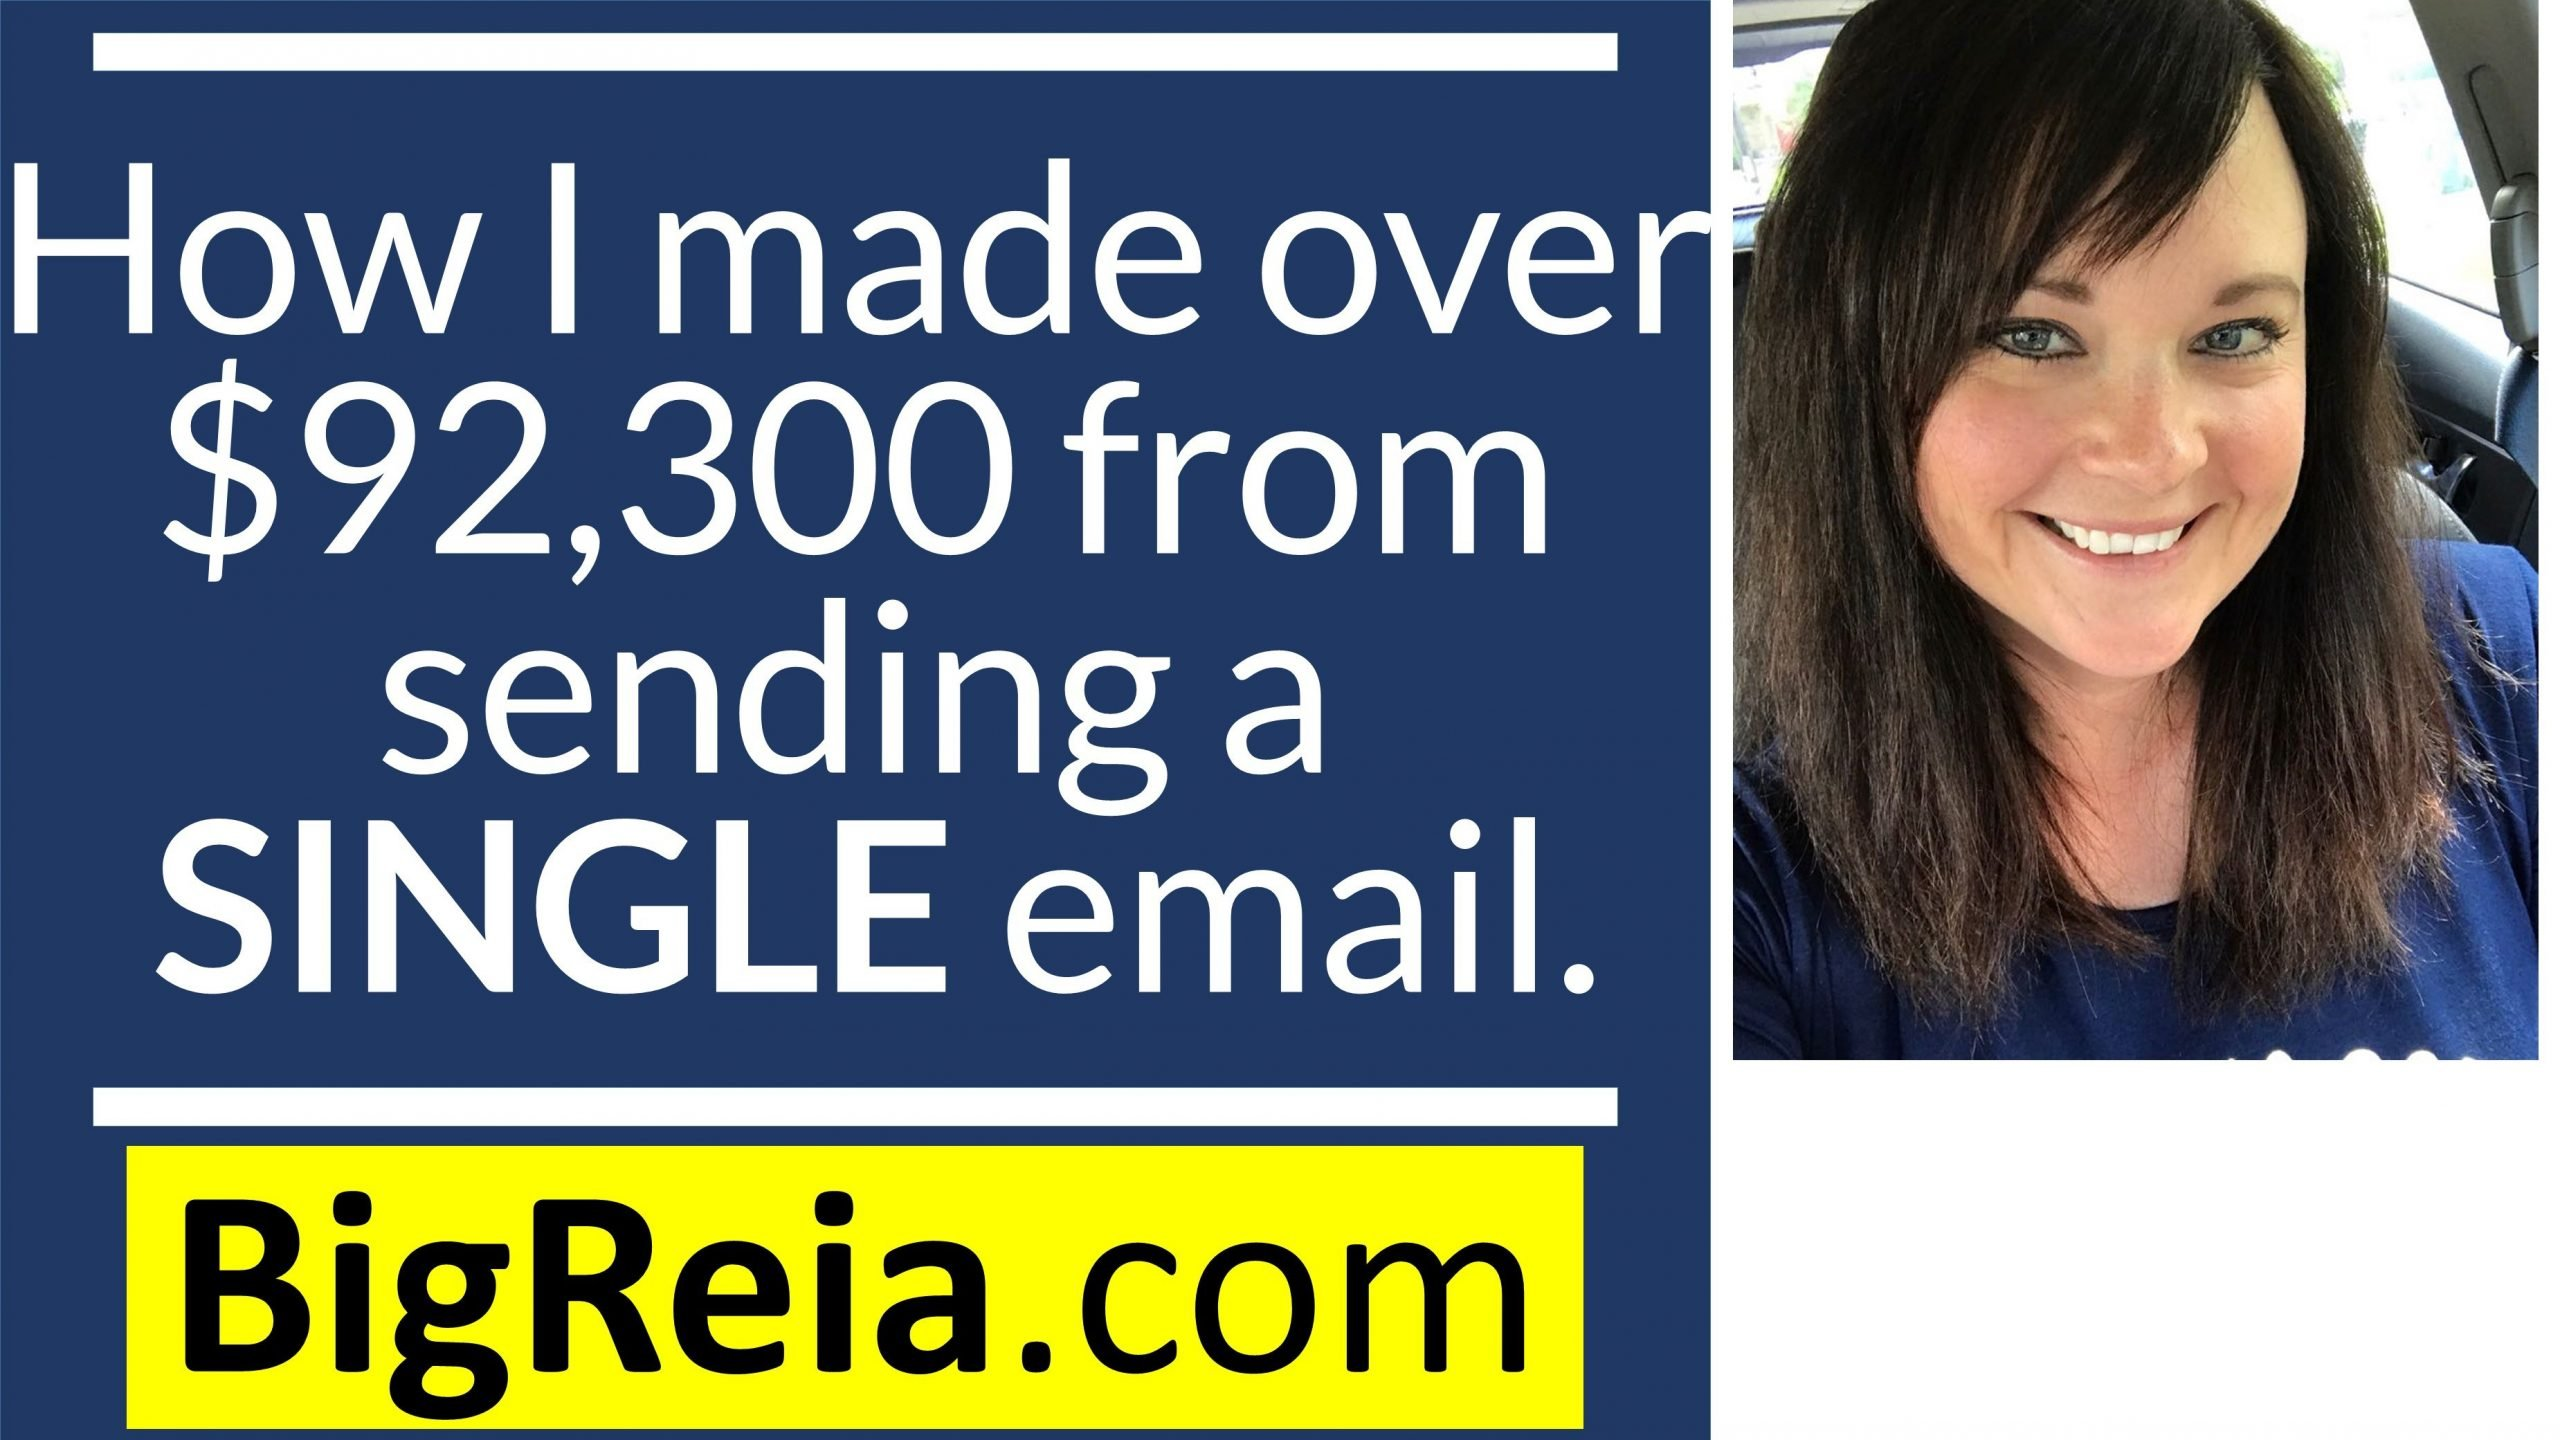 How I made over $92,000 from sending a SINGLE email by working with new home builders.